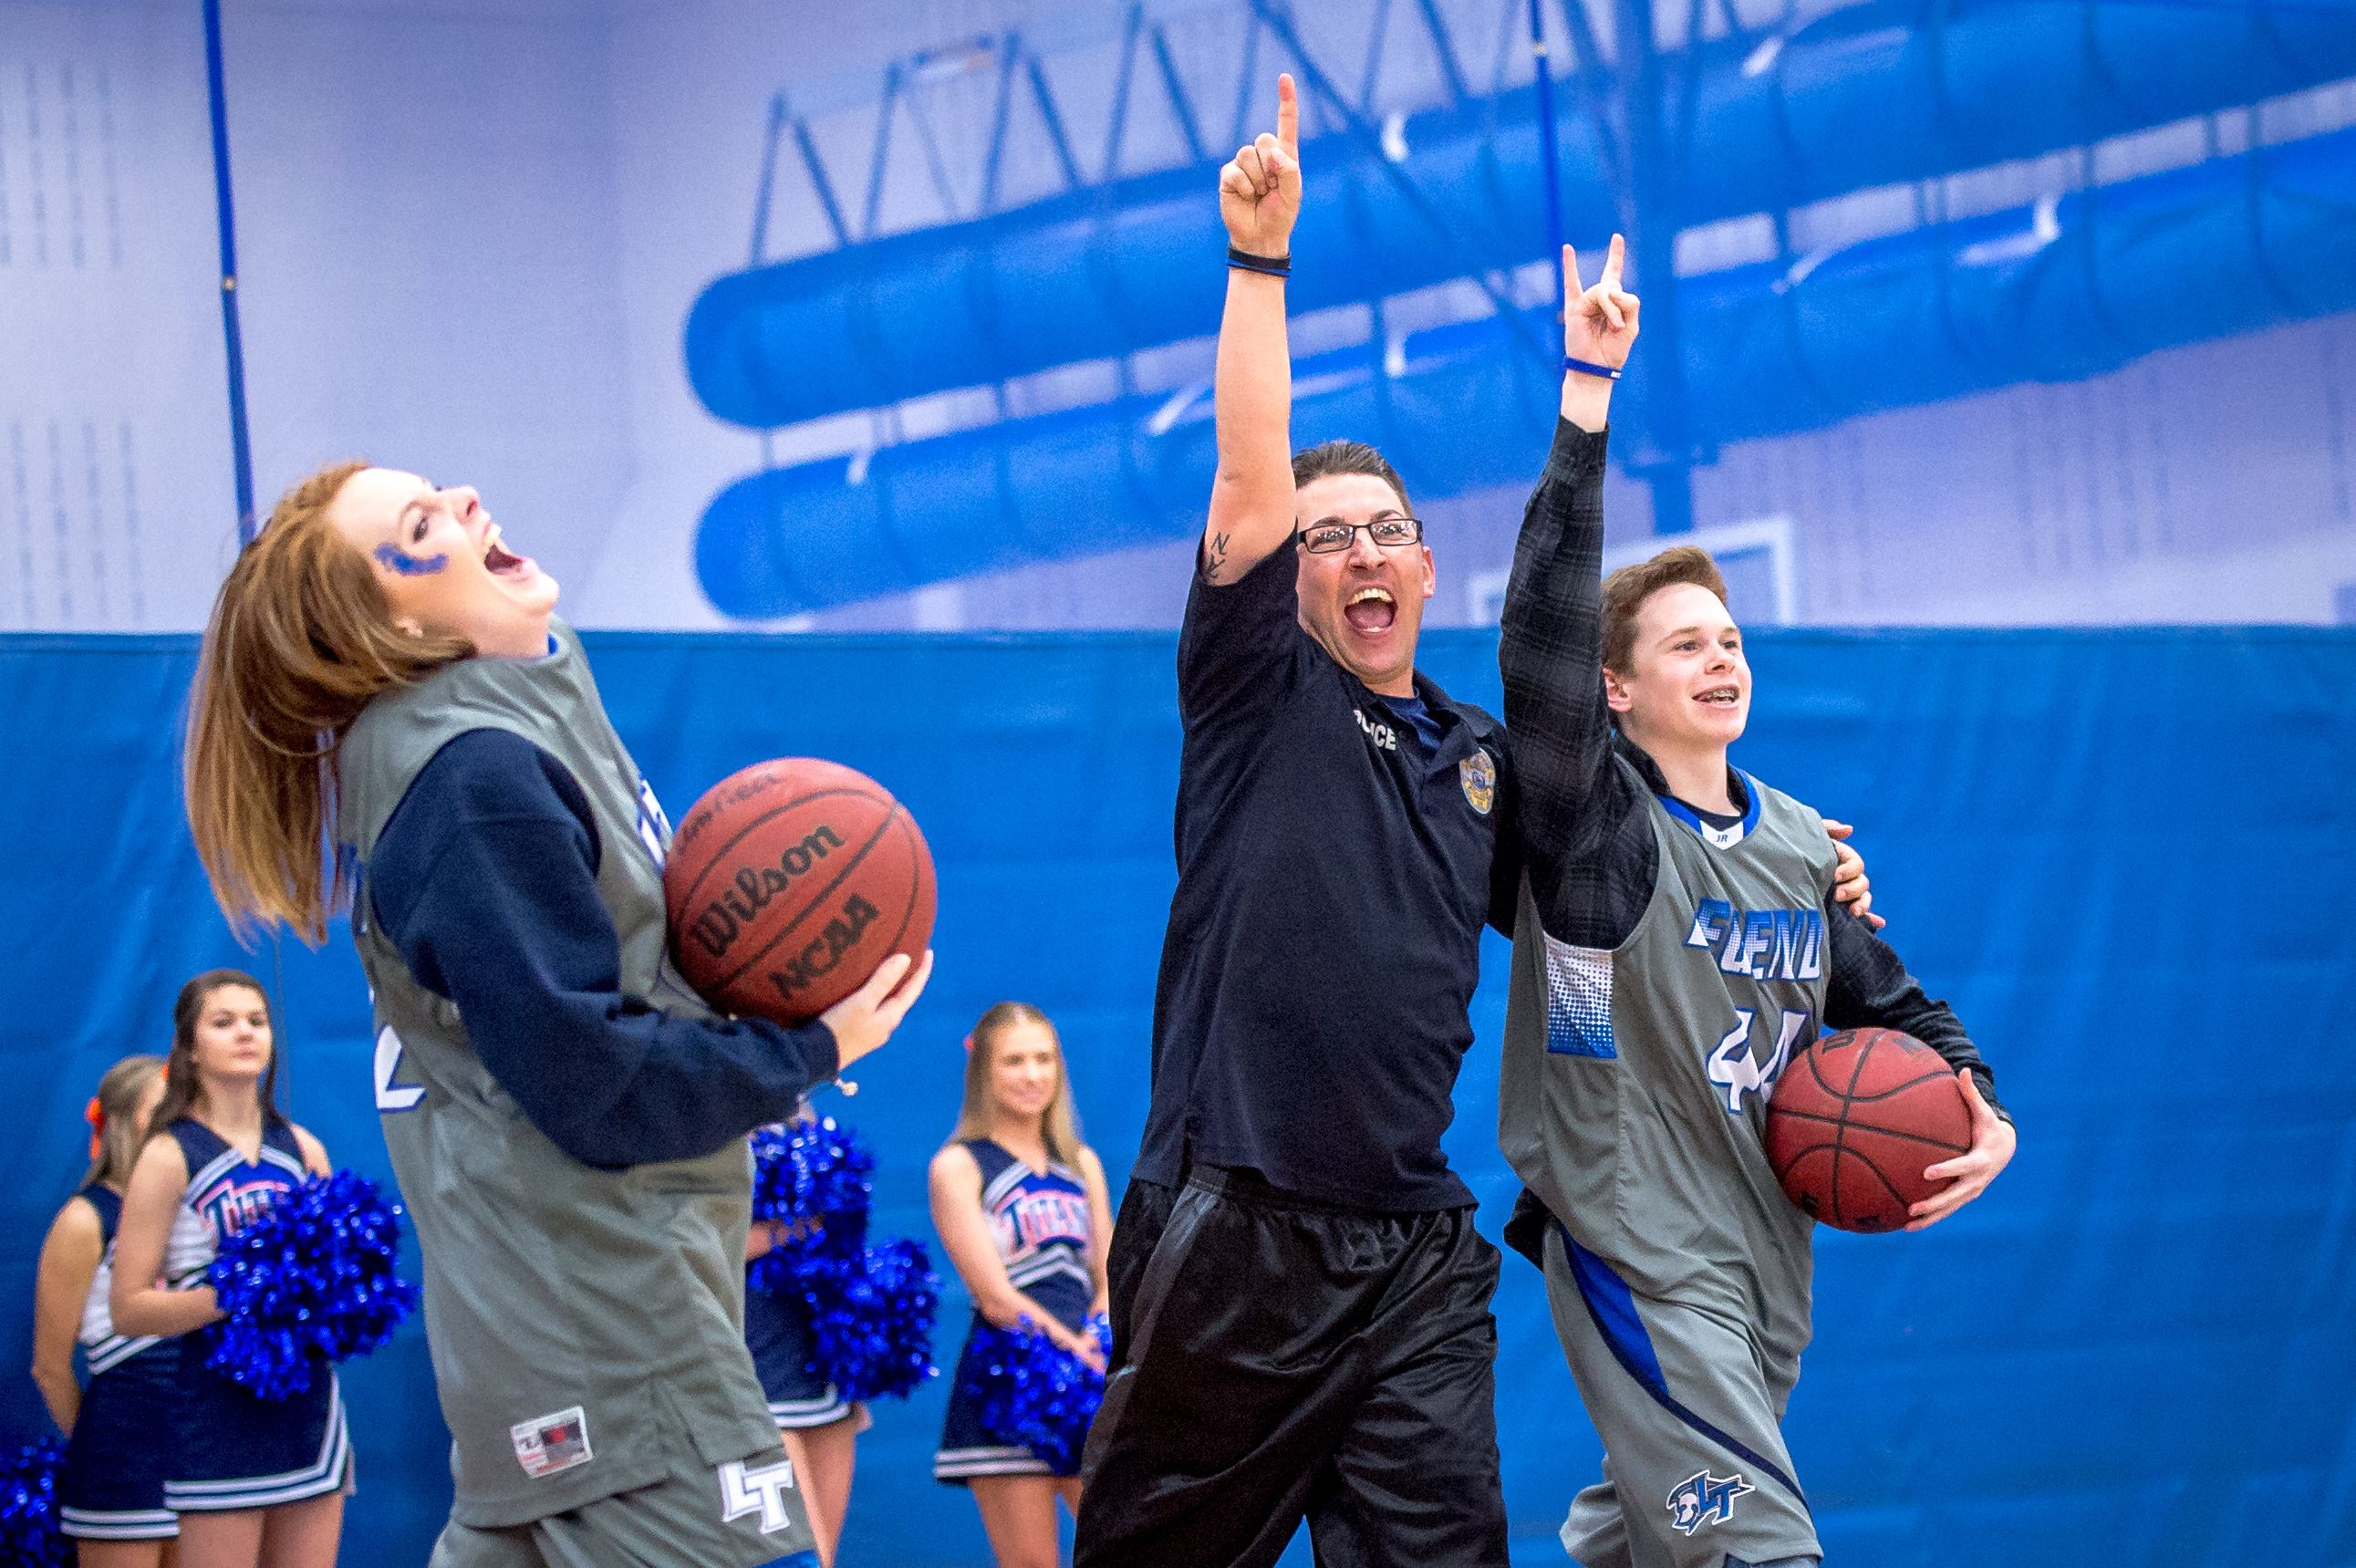 Officer with Legend Unified Basketball players on the court